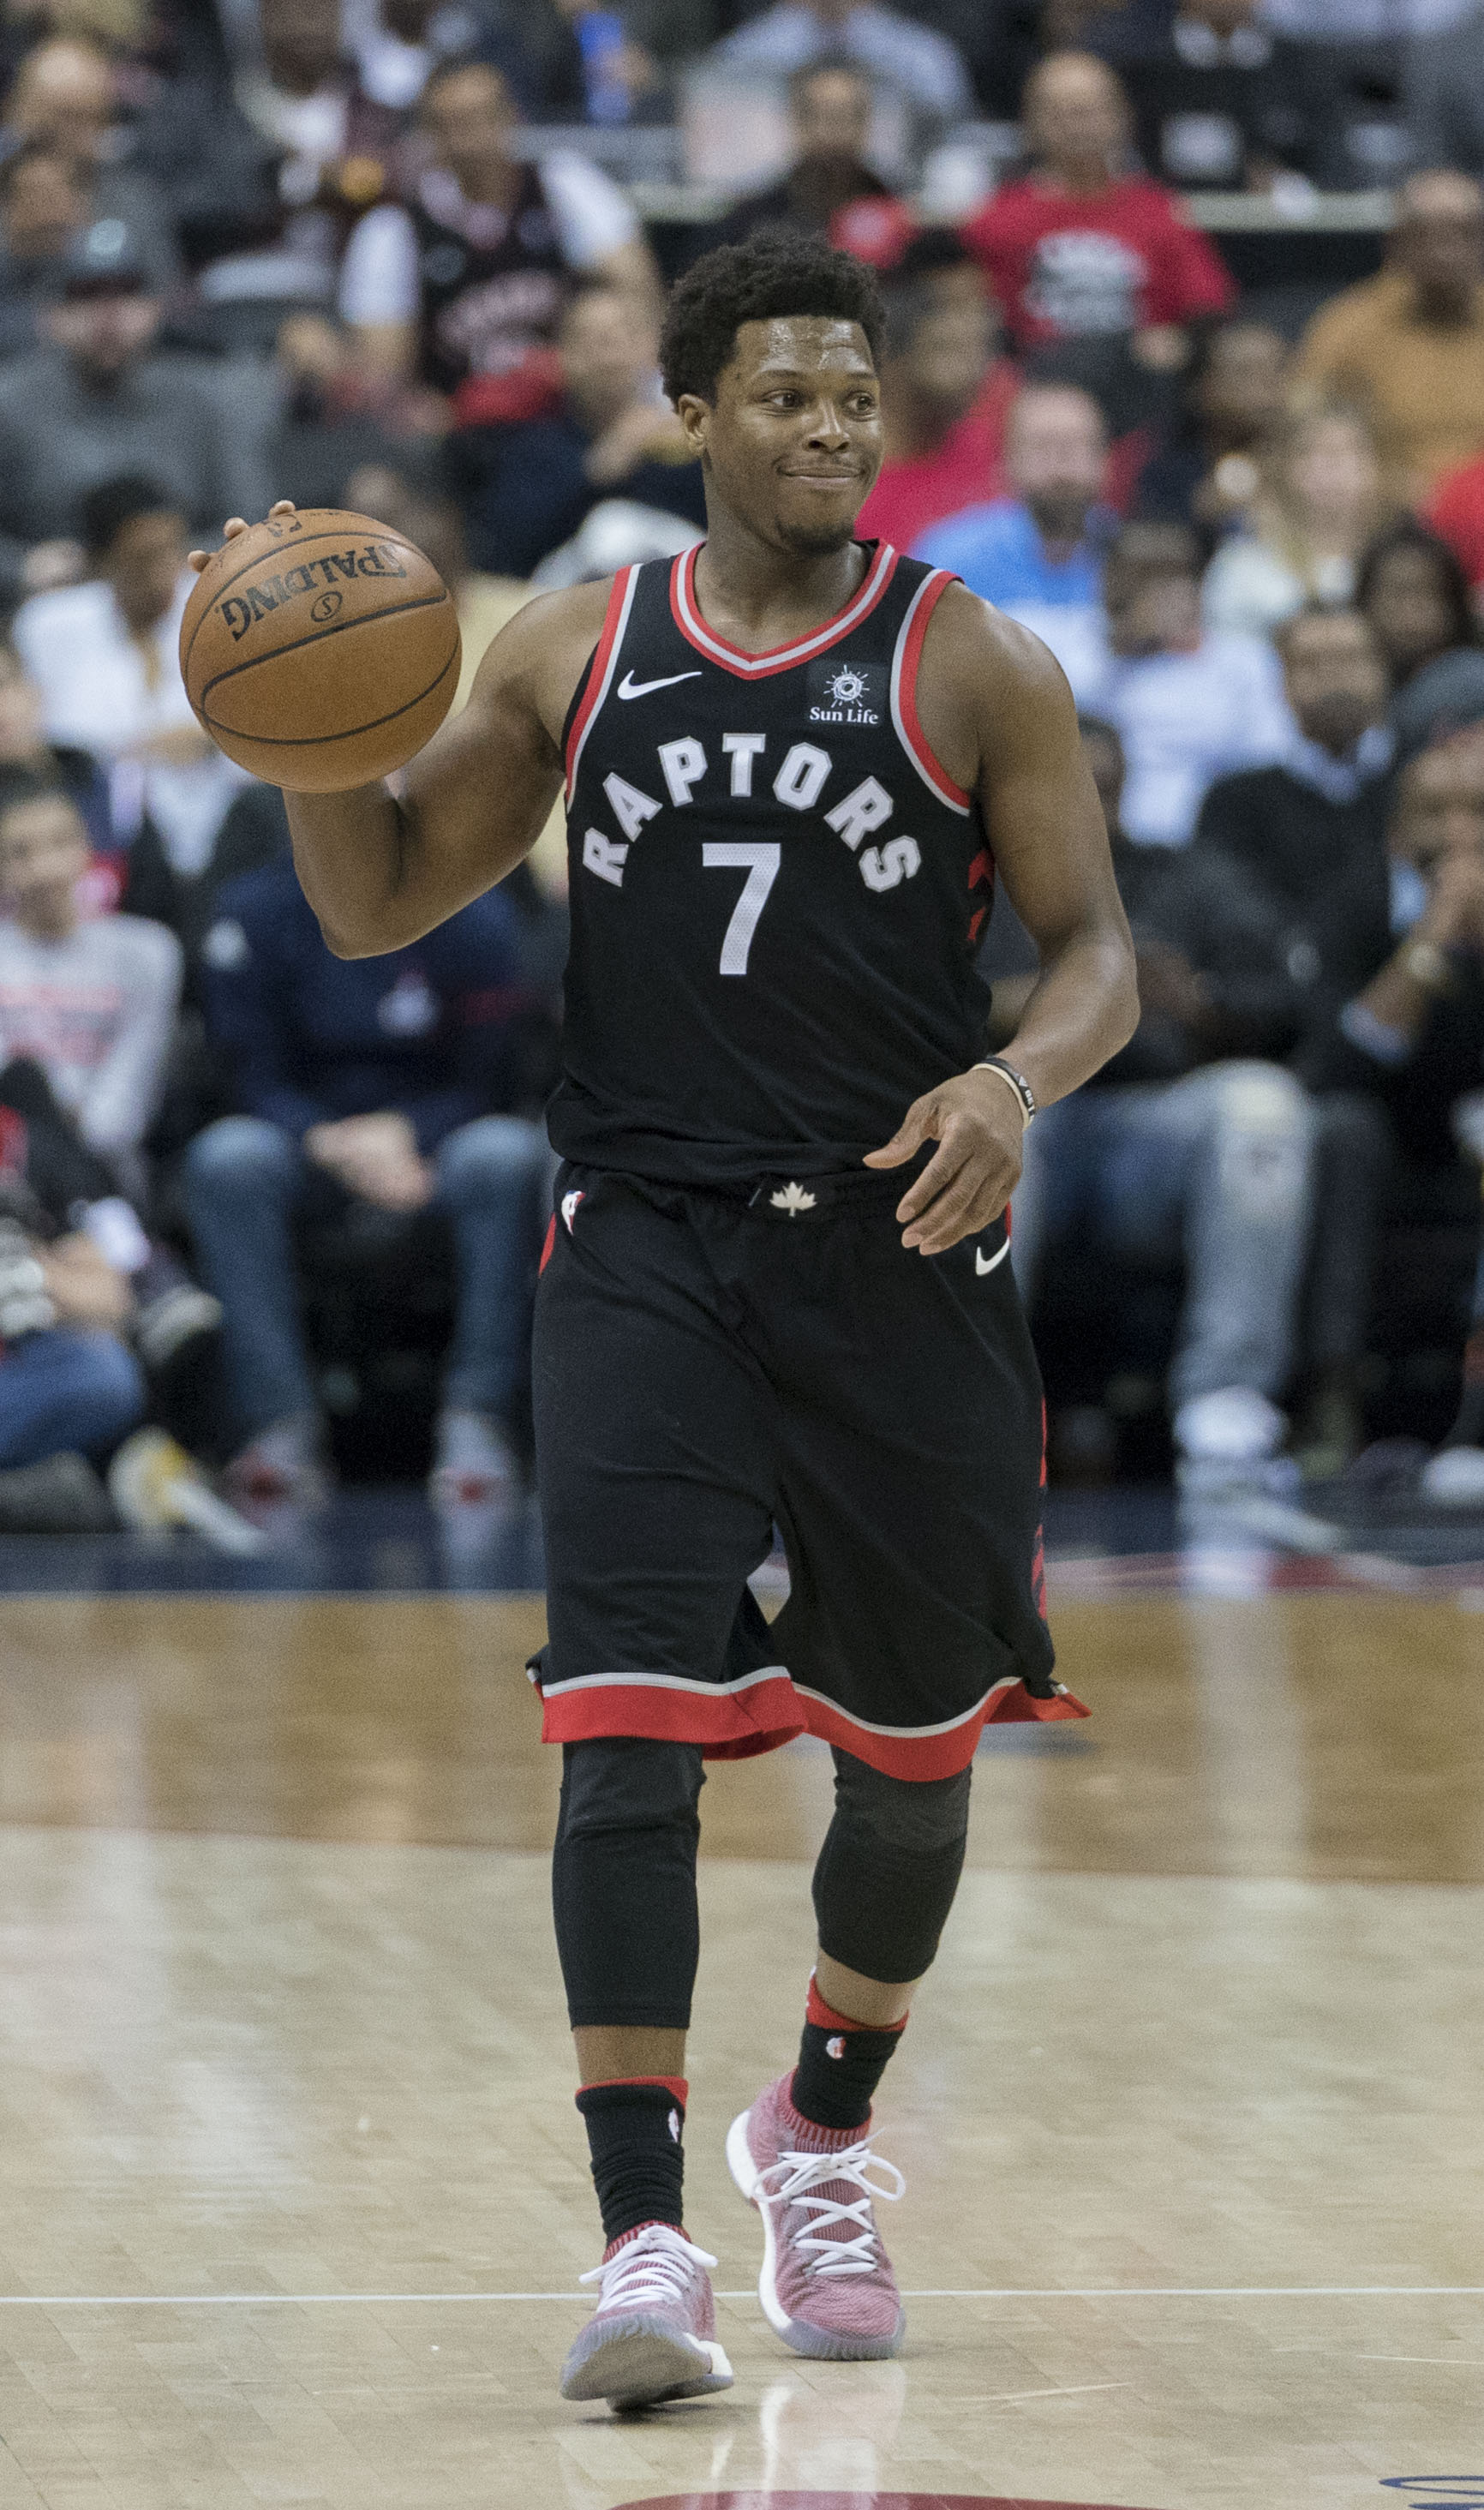 The 32-year old son of father (?) and mother Marie Holloway Kyle Lowry in 2018 photo. Kyle Lowry earned a 0.51 million dollar salary - leaving the net worth at 15 million in 2018